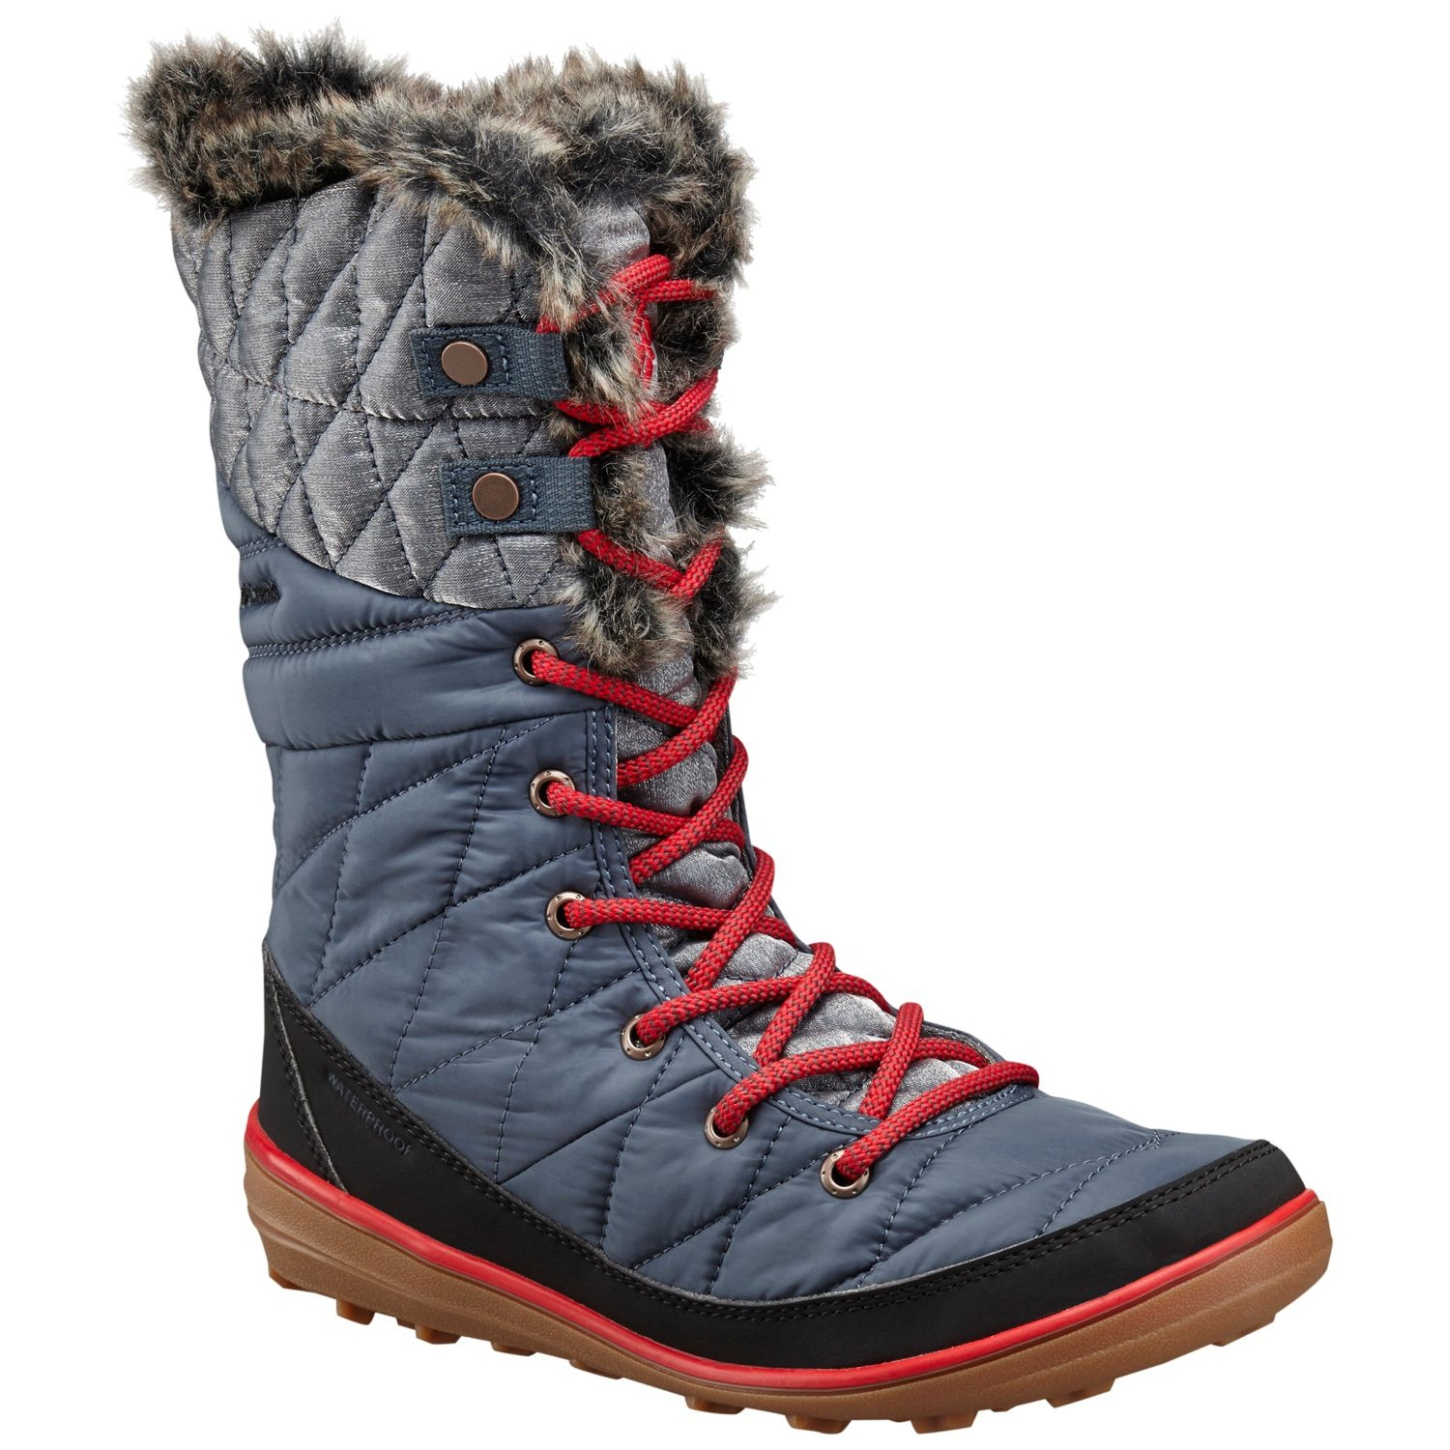 Columbia Women's Heavenly Omni-heat Organza Winter Boots Mystery, Bright Red-30